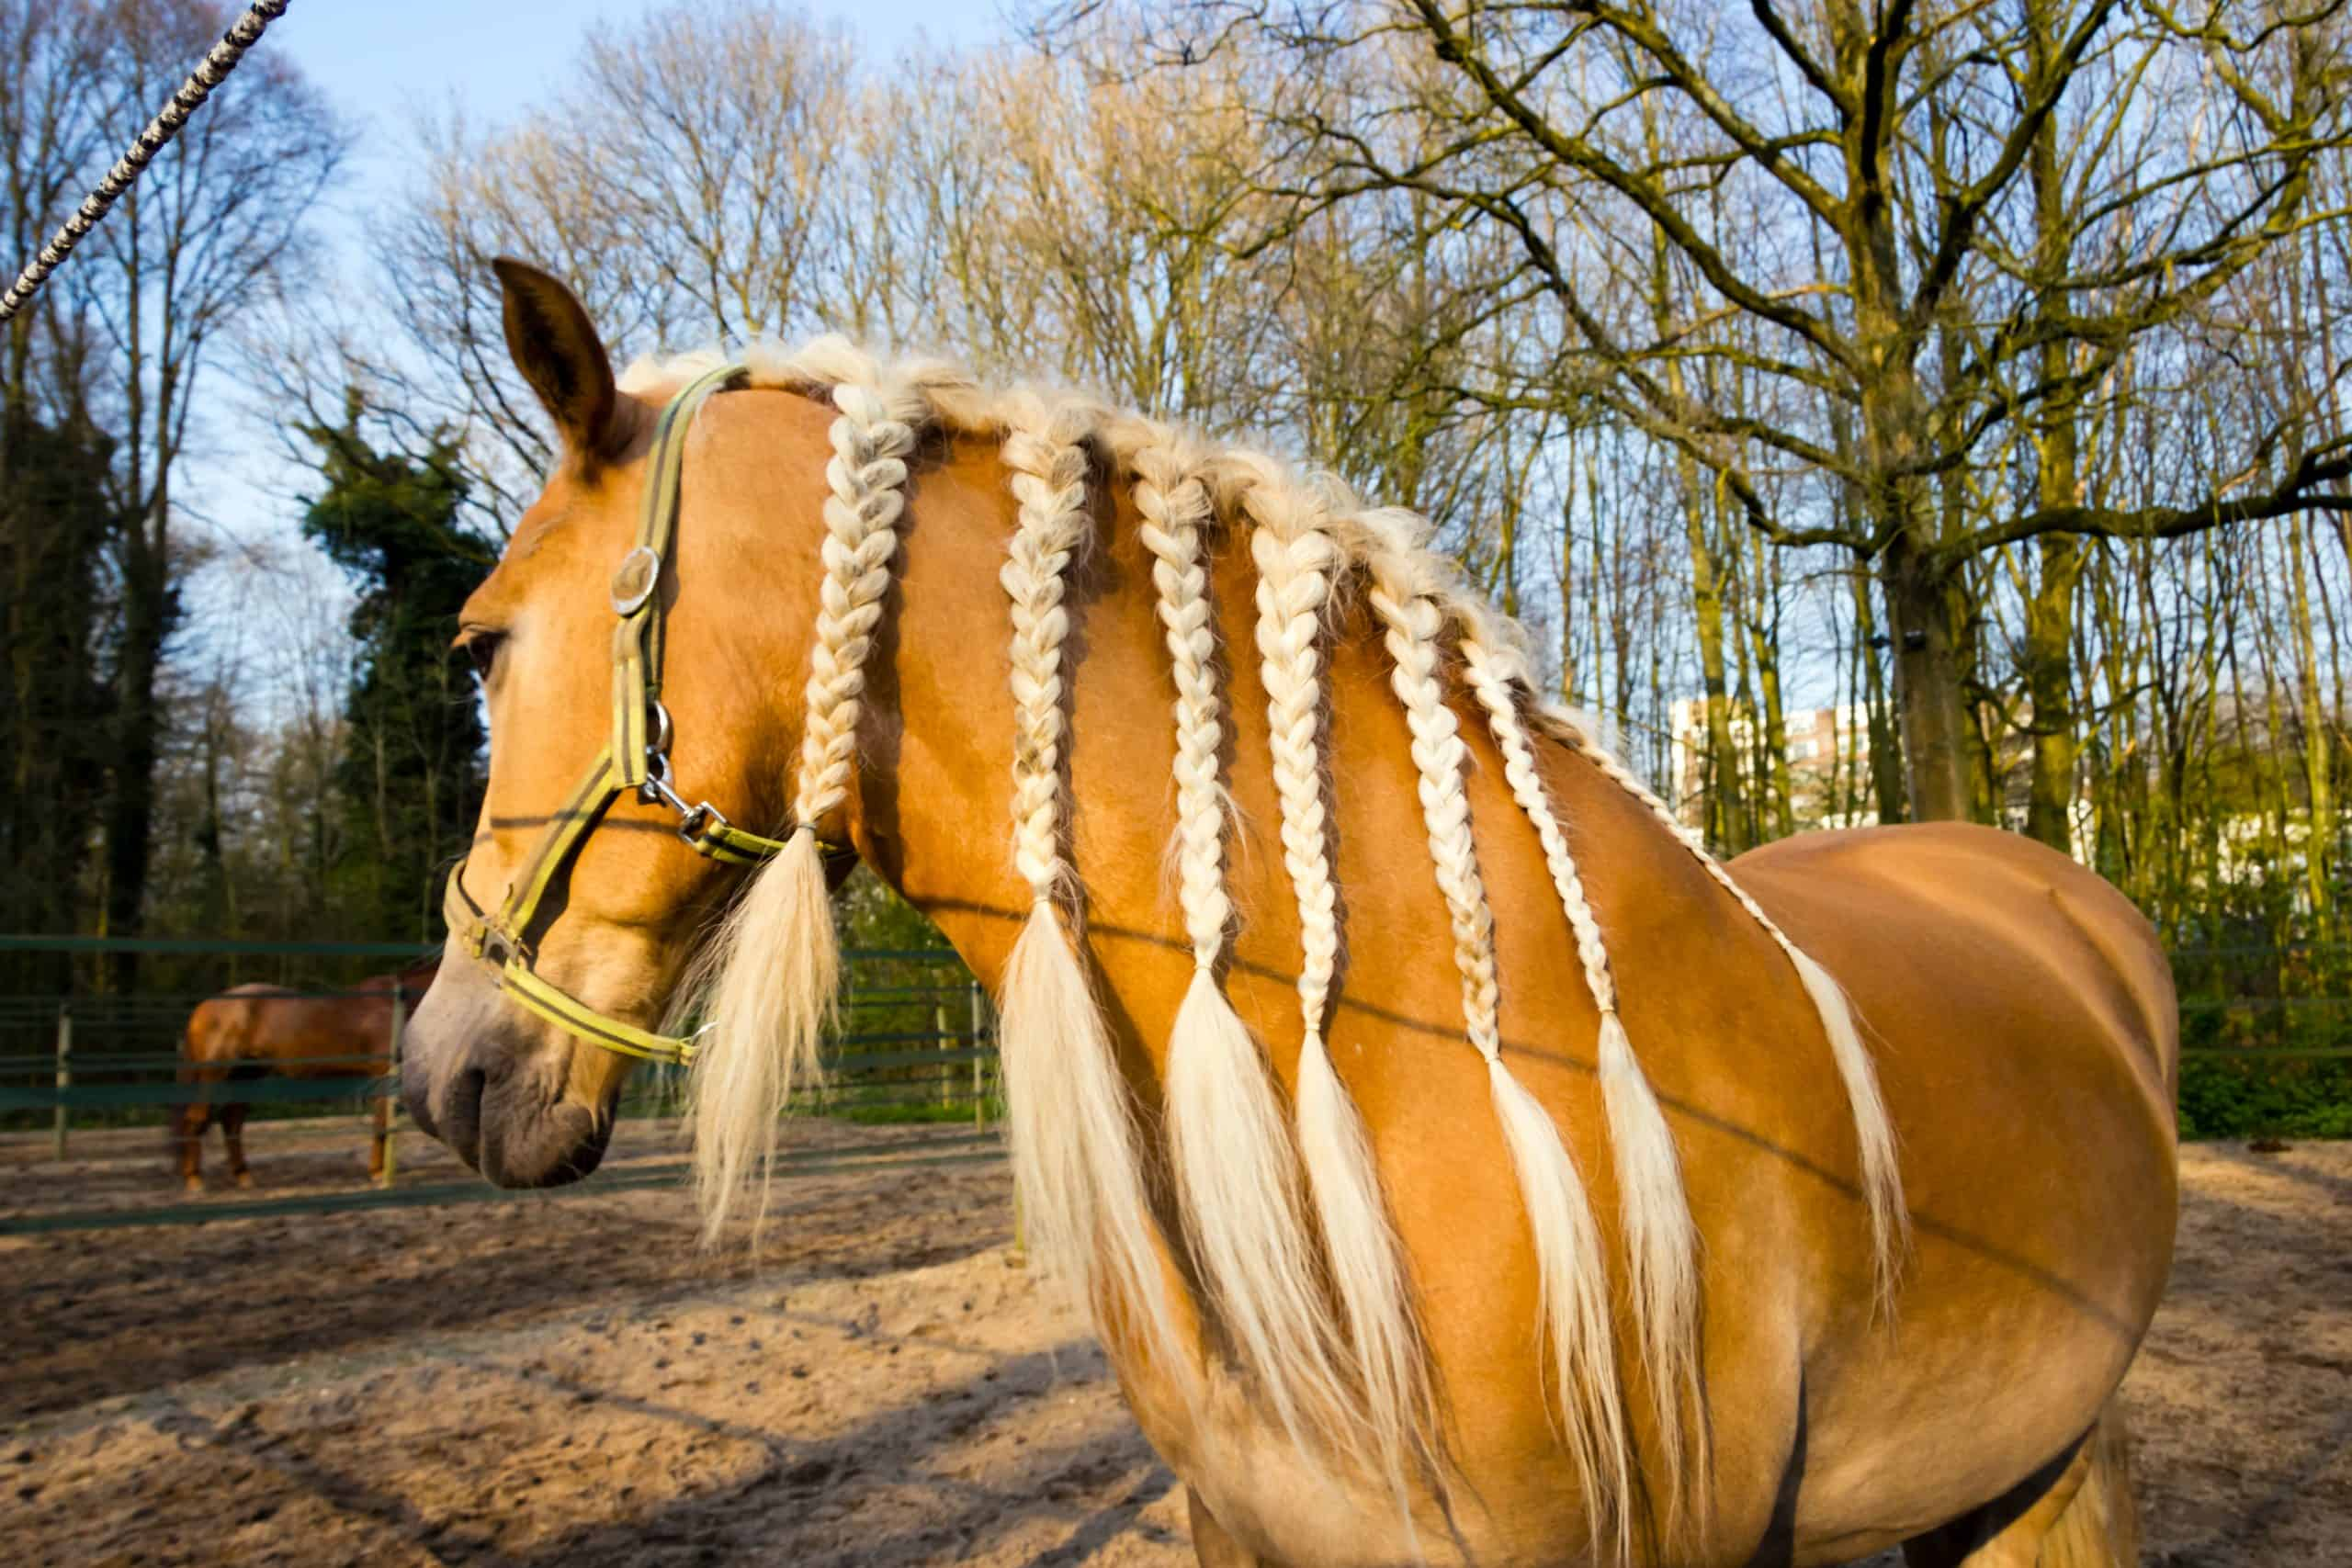 Horse with braids agains spring background